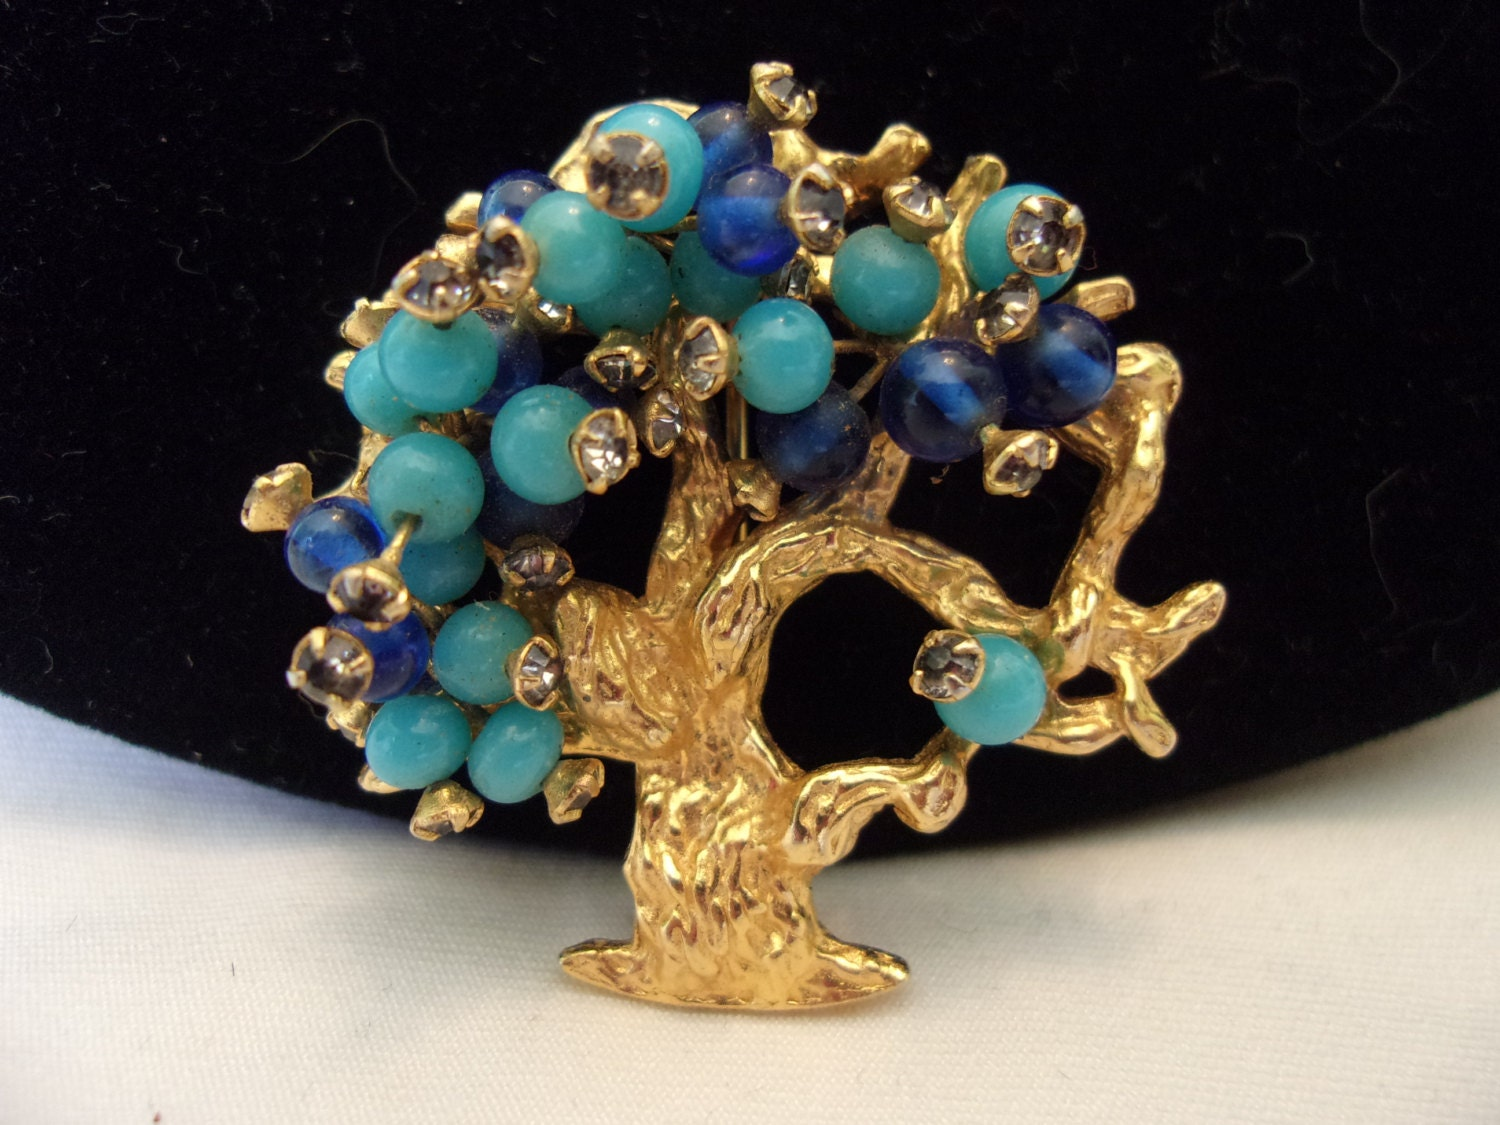 hattie carnegie jewelry hattie carnegie jewelry tree brooch pin blue turquoise glass 8670